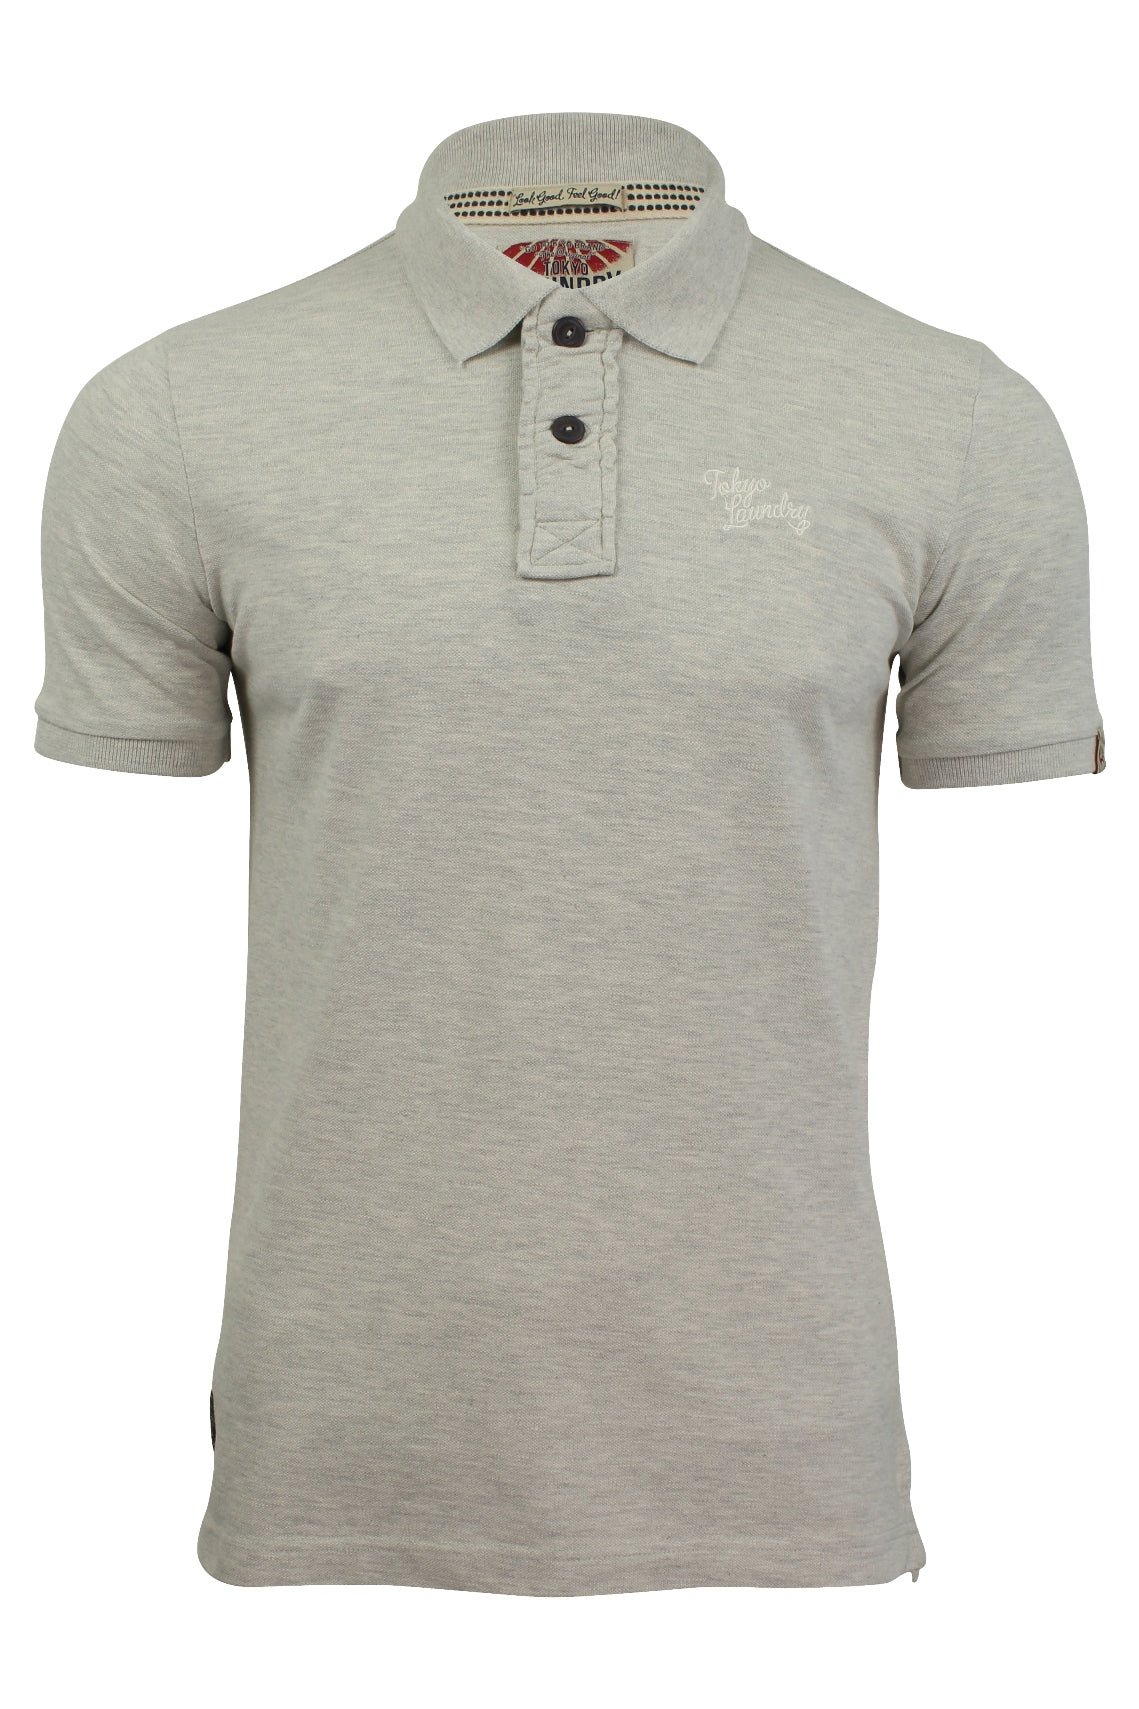 Mens Polo T-Shirt by Tokyo Laundry 'Rochester' Short Sleeved-Main Image